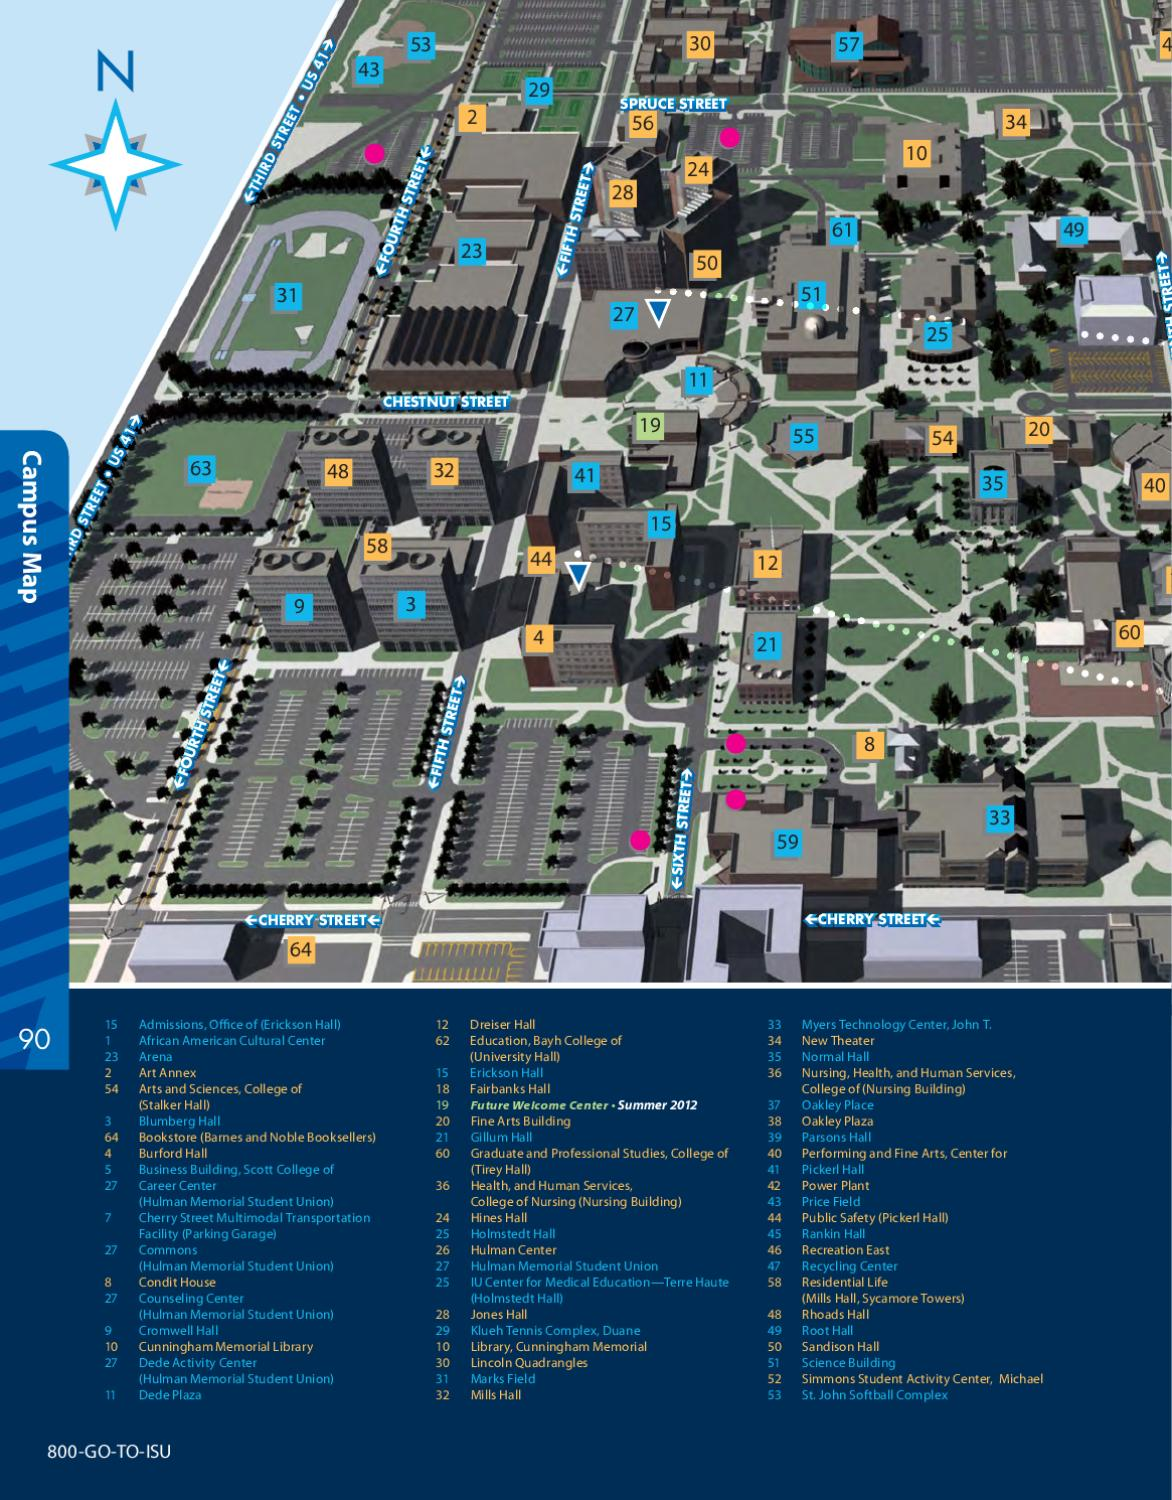 indiana state campus map Indiana State University Viewbook 2011 By Indiana State University indiana state campus map